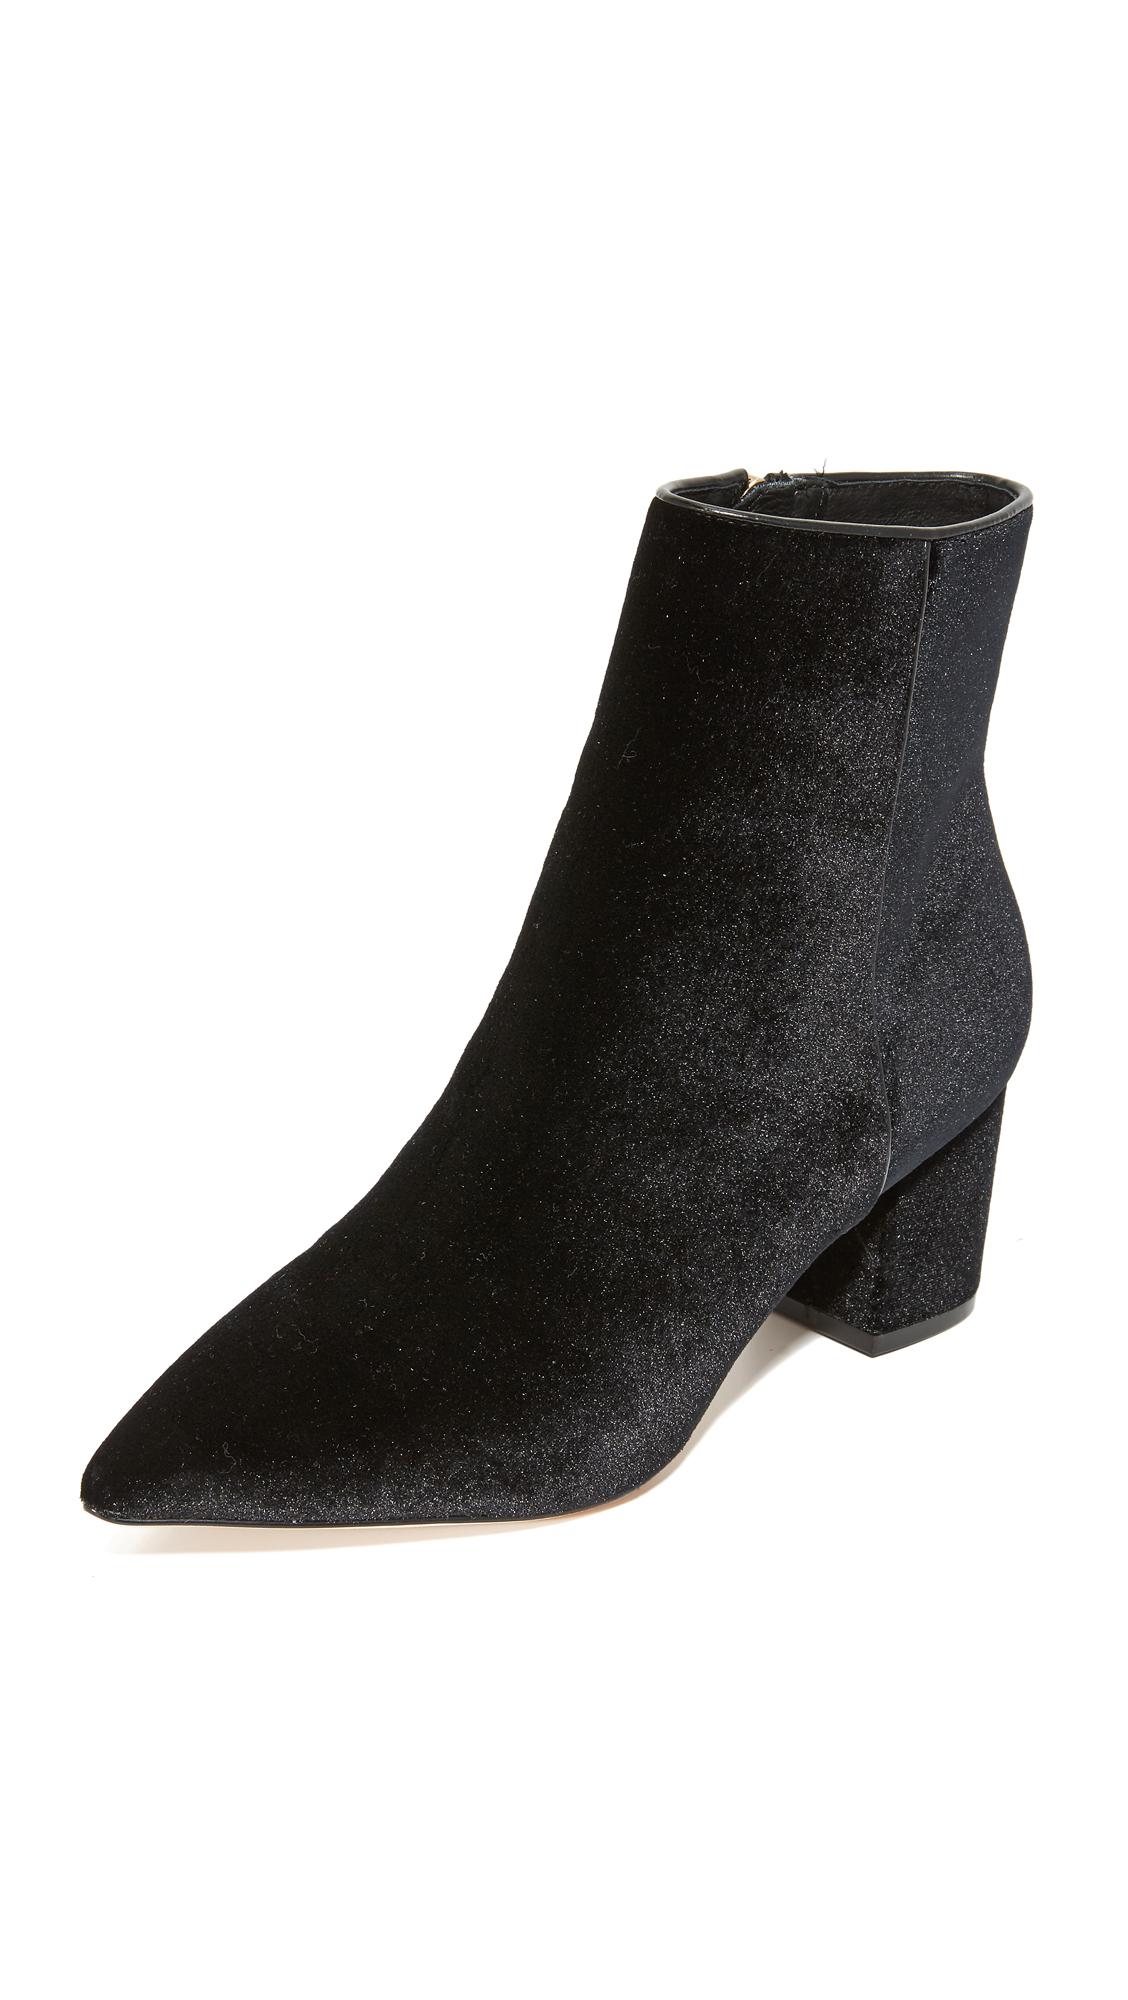 Plush velvet Steven booties in a pointed toe profile. Exposed zip at the side. Covered heel and leather sole. Fabric: Velvet. Imported, China. This item cannot be gift boxed. Measurements Heel: 2.25in / 55mm. Available sizes: 6,7,7.5,8,8.5,9,10